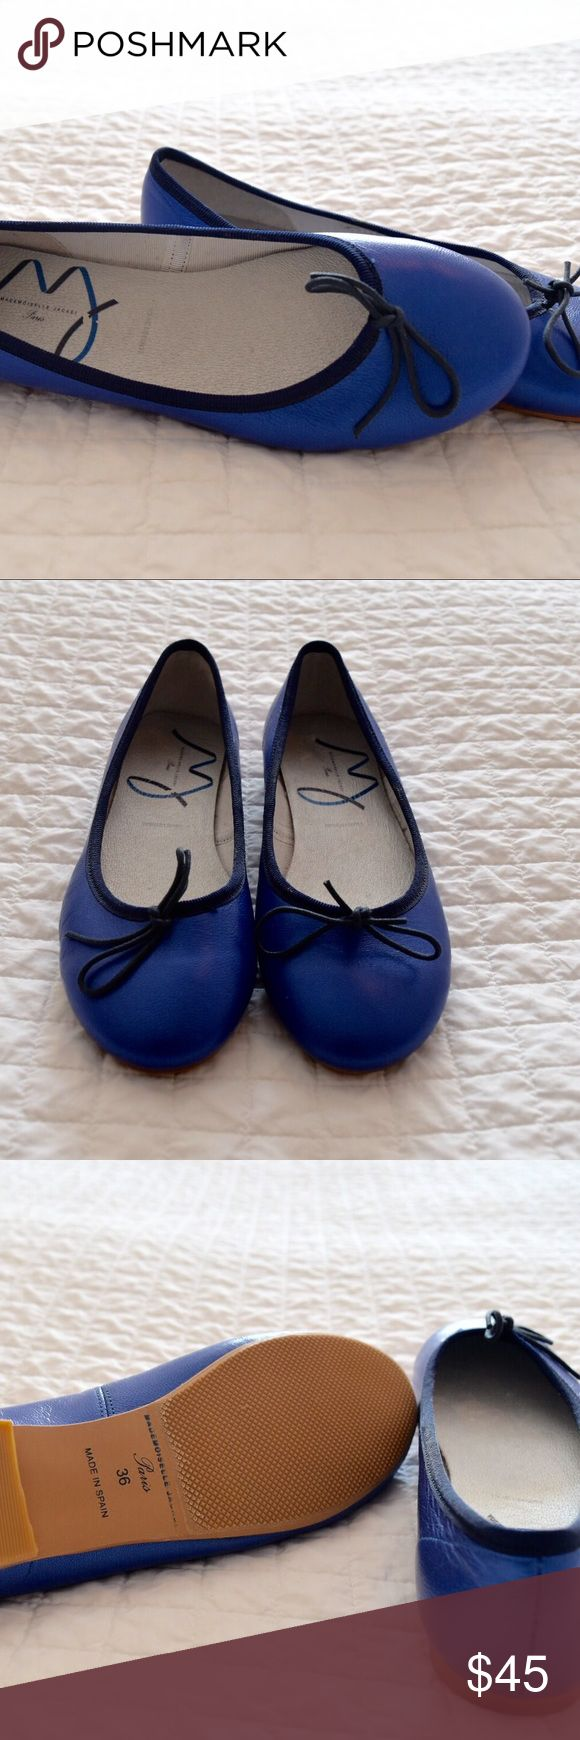 Jacadi Flats Made in Spain. European size 36 which is 4.5 in USA size. 29.5 inches. Brand new, never worn Jacadi Shoes Slippers